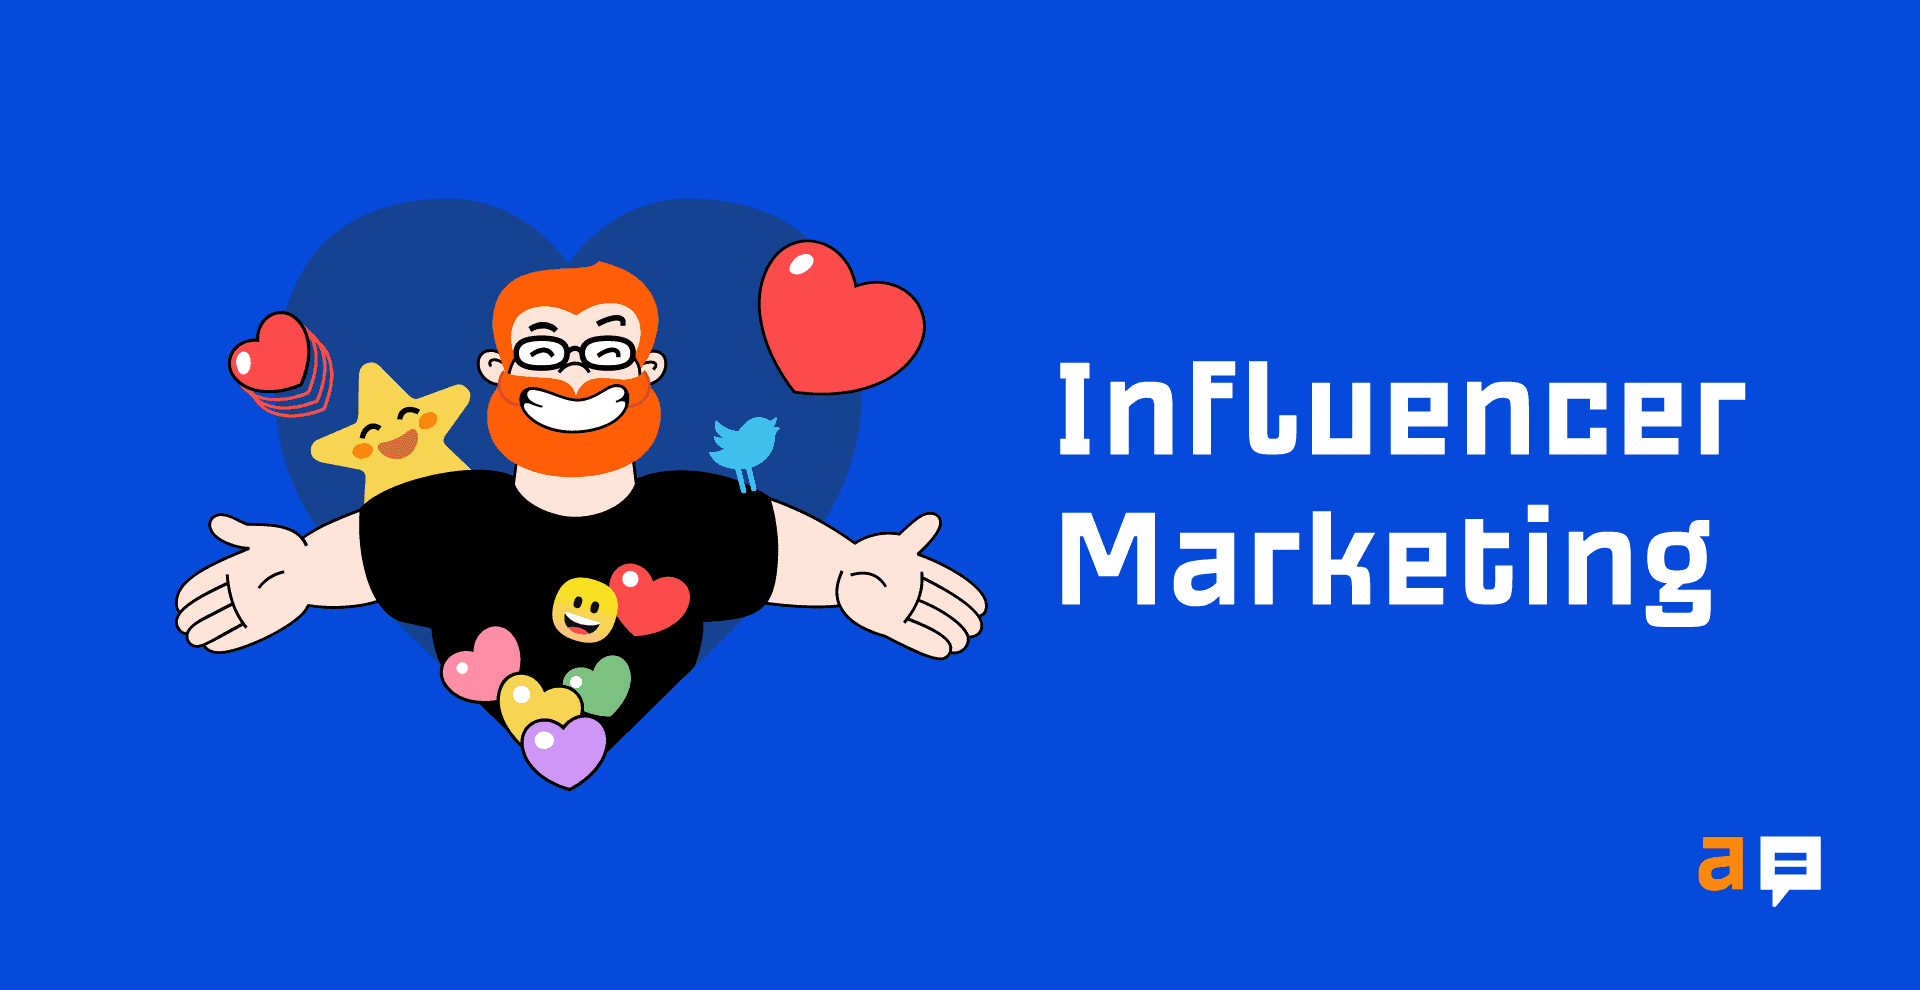 Influencer Marketing in 2021: Definition, Examples, and Tactics